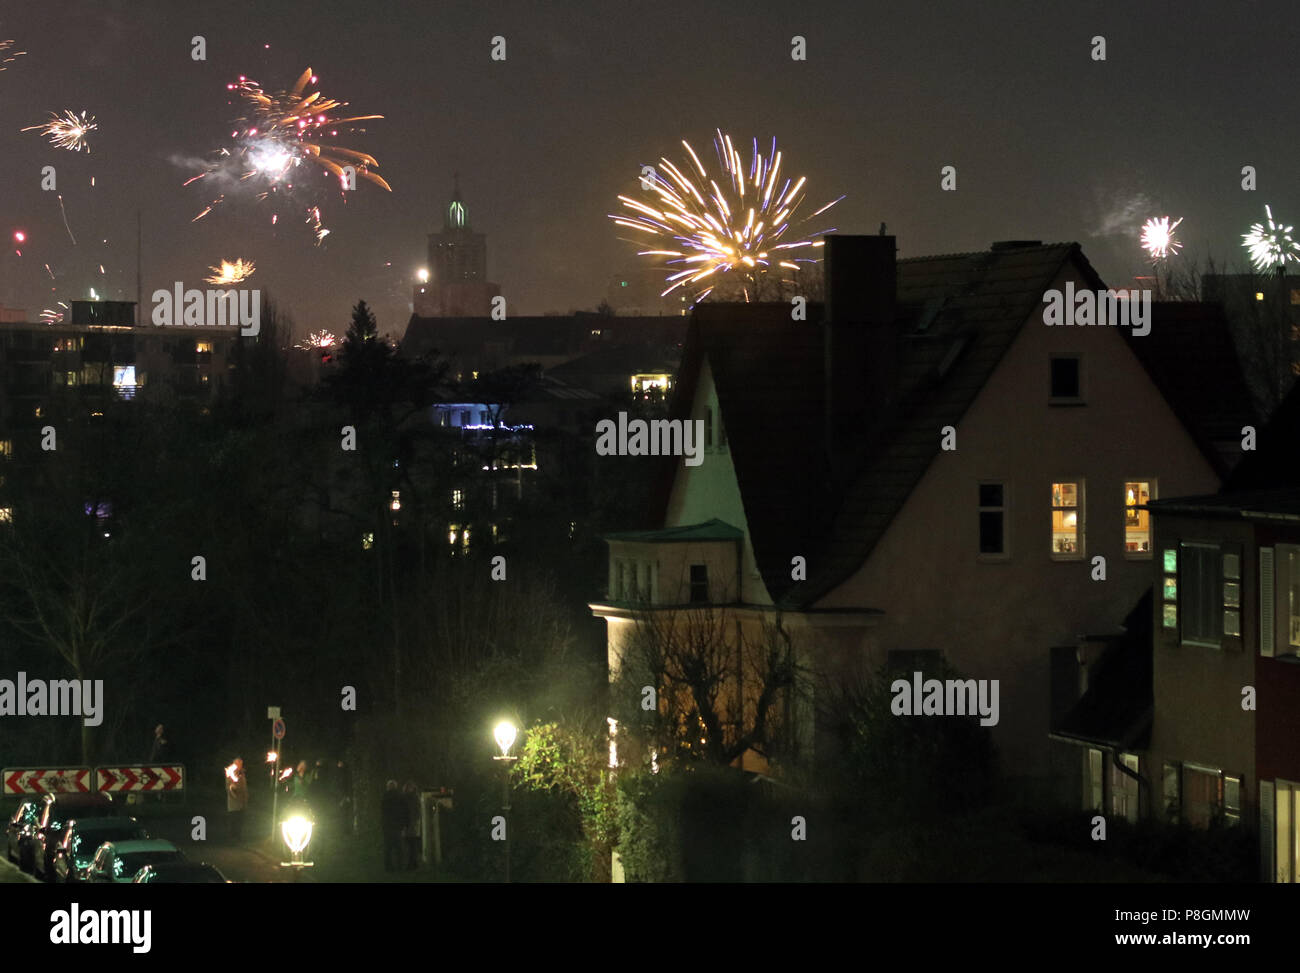 Berlin, Germany, New Year's Eve fireworks over a residential area Stock Photo